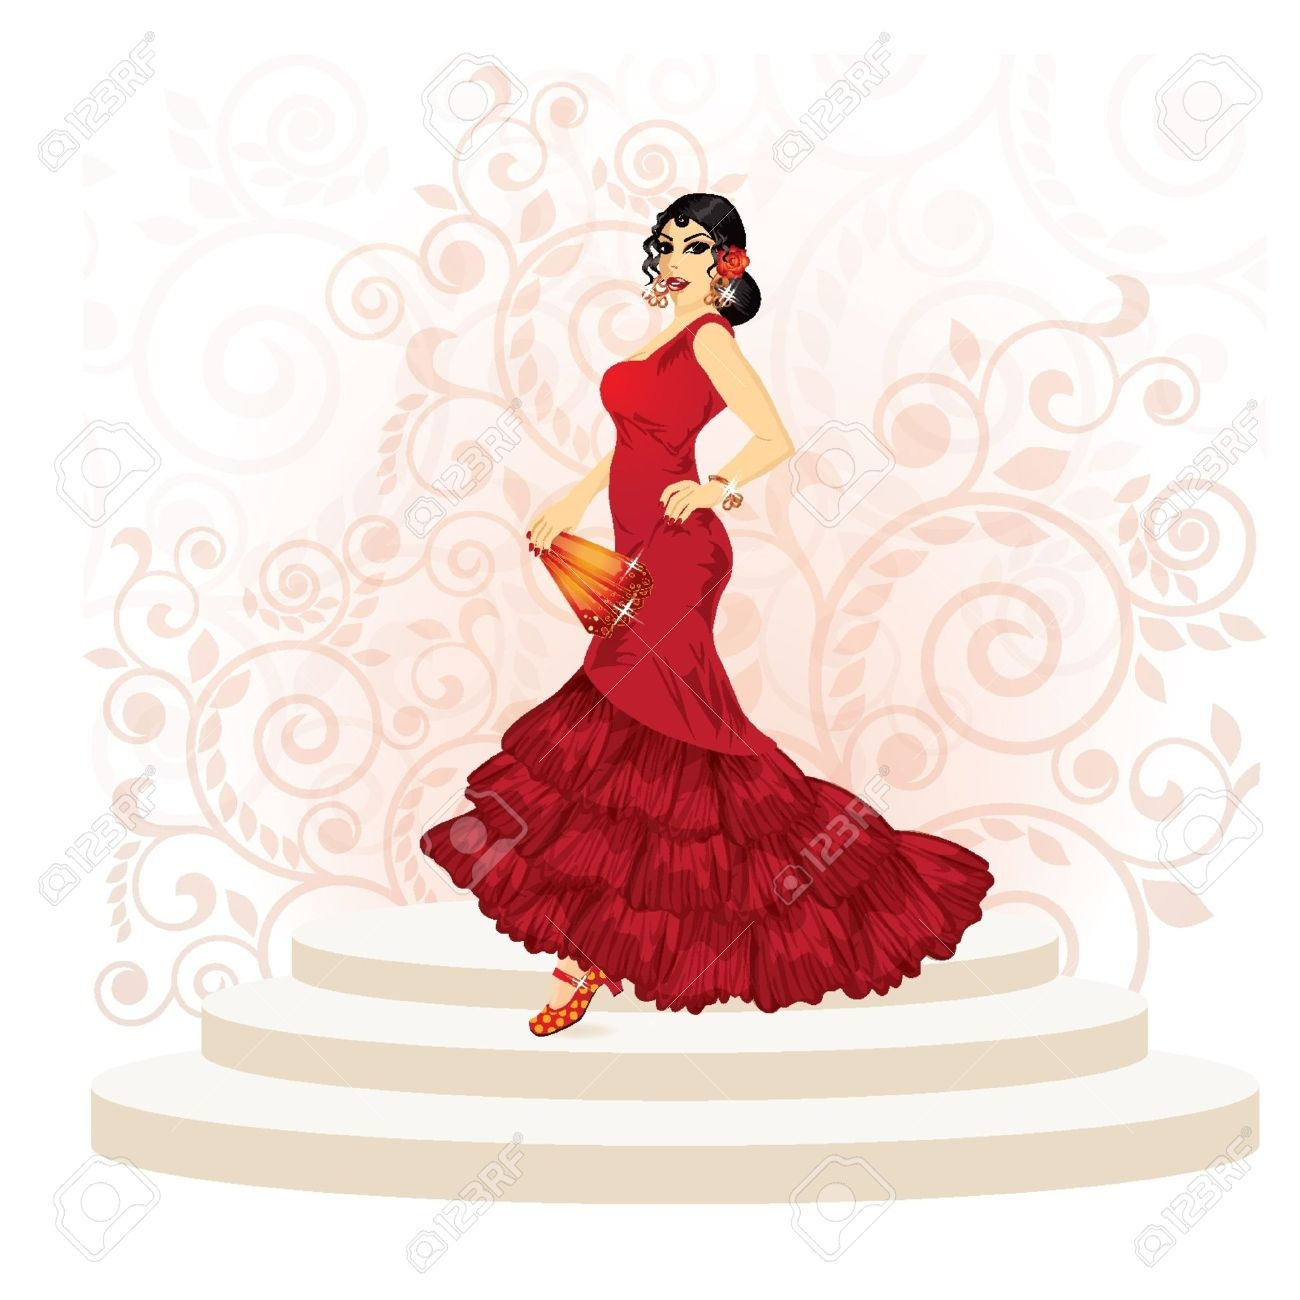 Spanish clipart spanish dance Cliparts Download Clipart Art Spanish